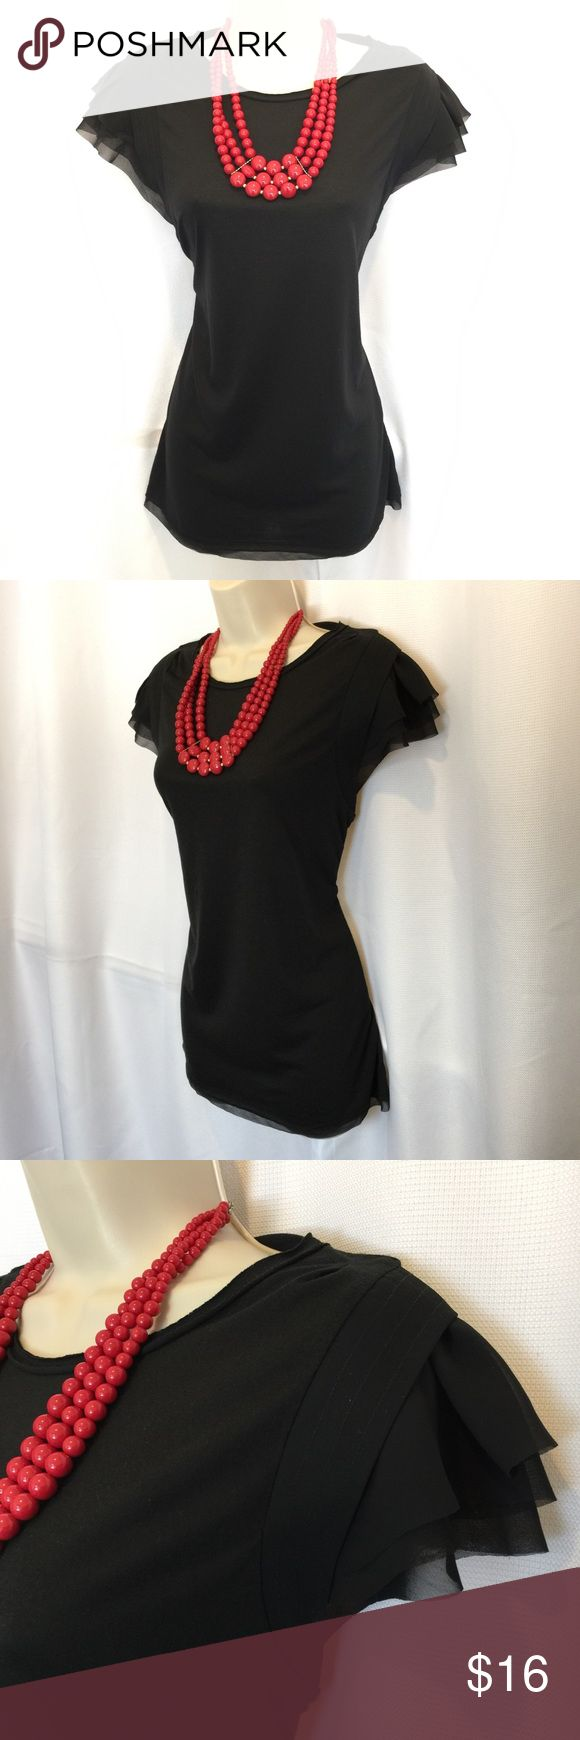 SIMPLY VERA VERA WANG Black Tissue Shoulder Tee Simply Vera Vera Wang black with layered woven polyester detailing on the shoulders.  Super cute and stylish.  Woven polyester layer on bottom hem as well.  Raw edge around collar for an edgy look.  Knit polyester/rayon fabric for a stretchy fit.  28 inches from shoulder to bottom hem.  Never worn and in new condition!! Simply Vera Vera Wang Tops